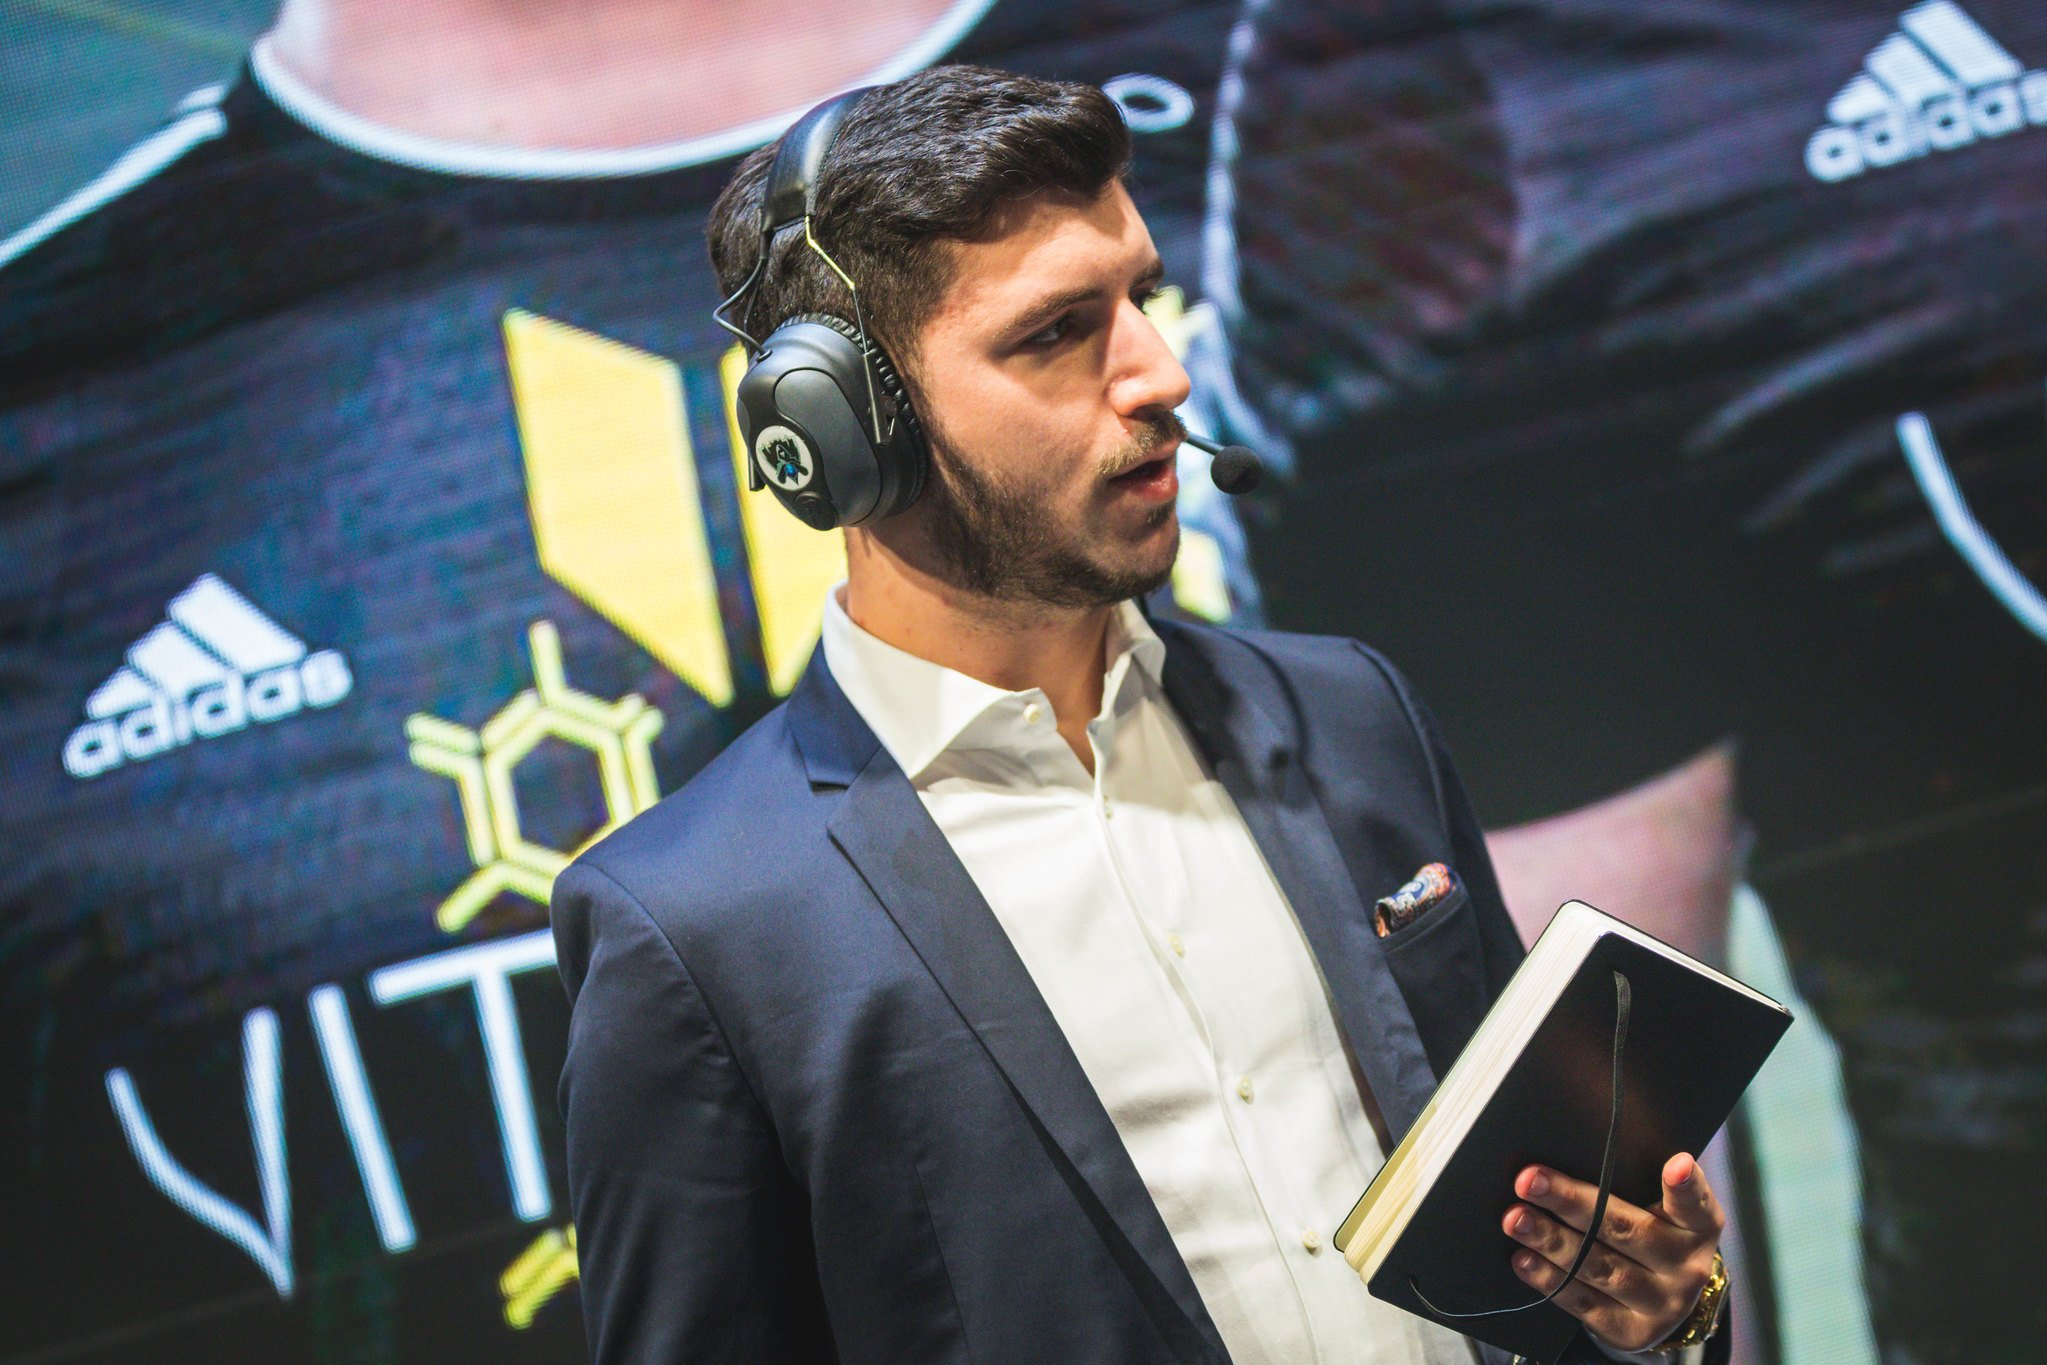 Sandbox Gaming Coach YamatoCannon Didn't Extend Contract For 2021 Season, Will Seek Other Opportunities